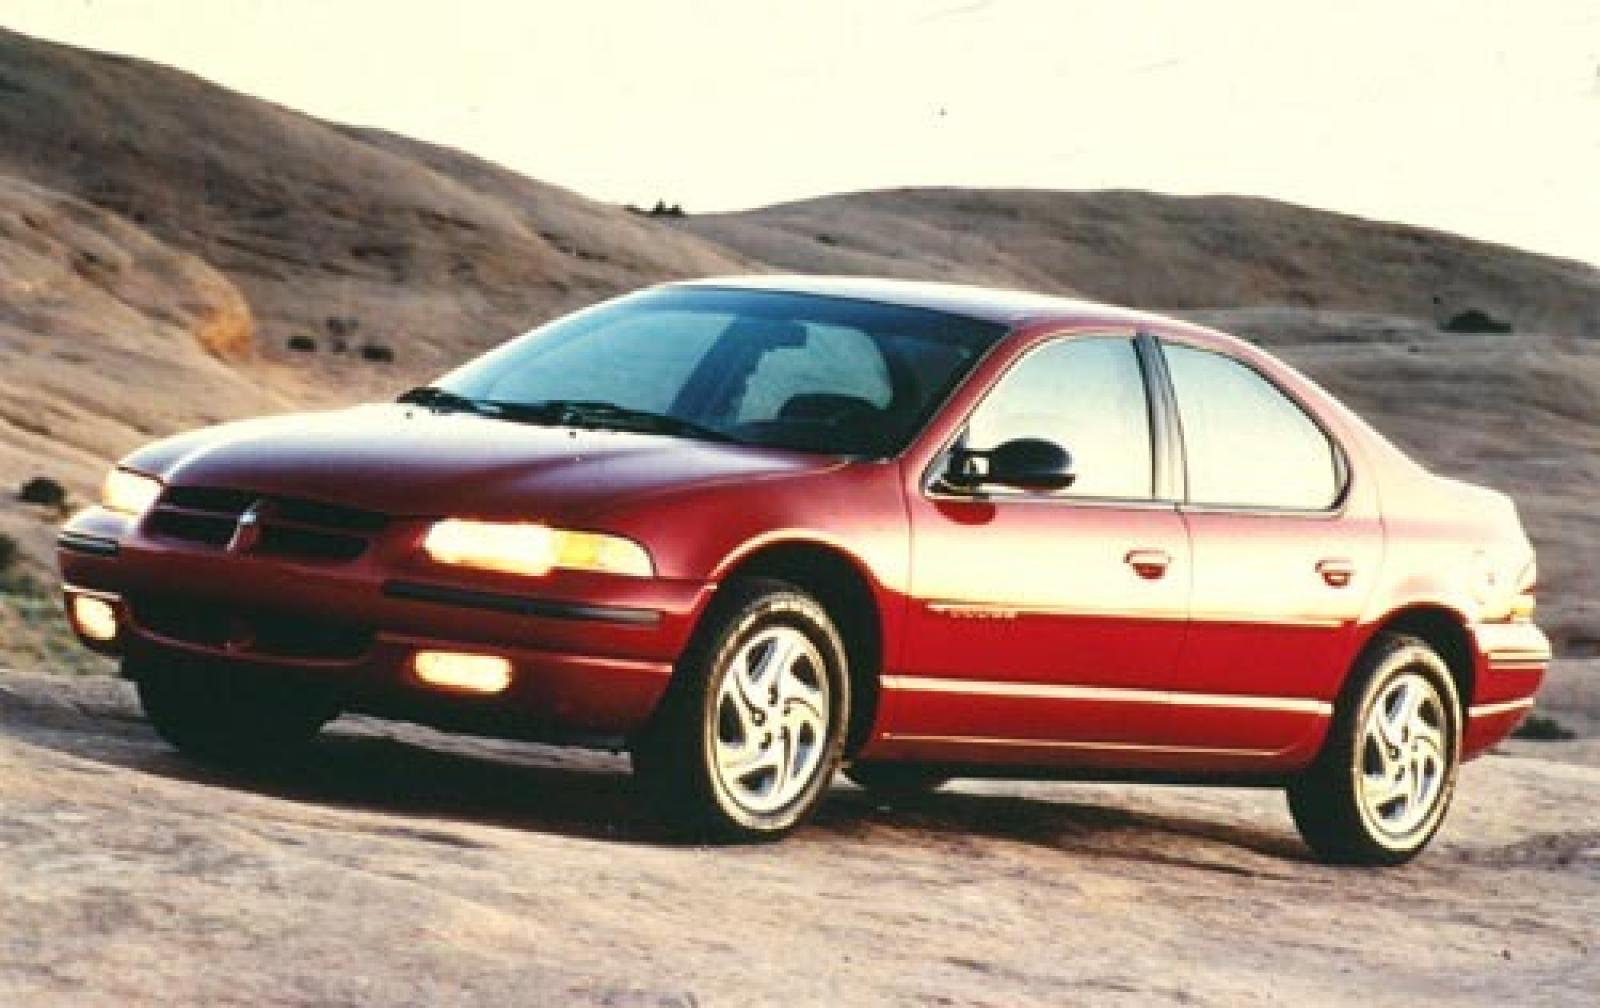 1997 dodge stratus information and photos zombiedrive. Cars Review. Best American Auto & Cars Review